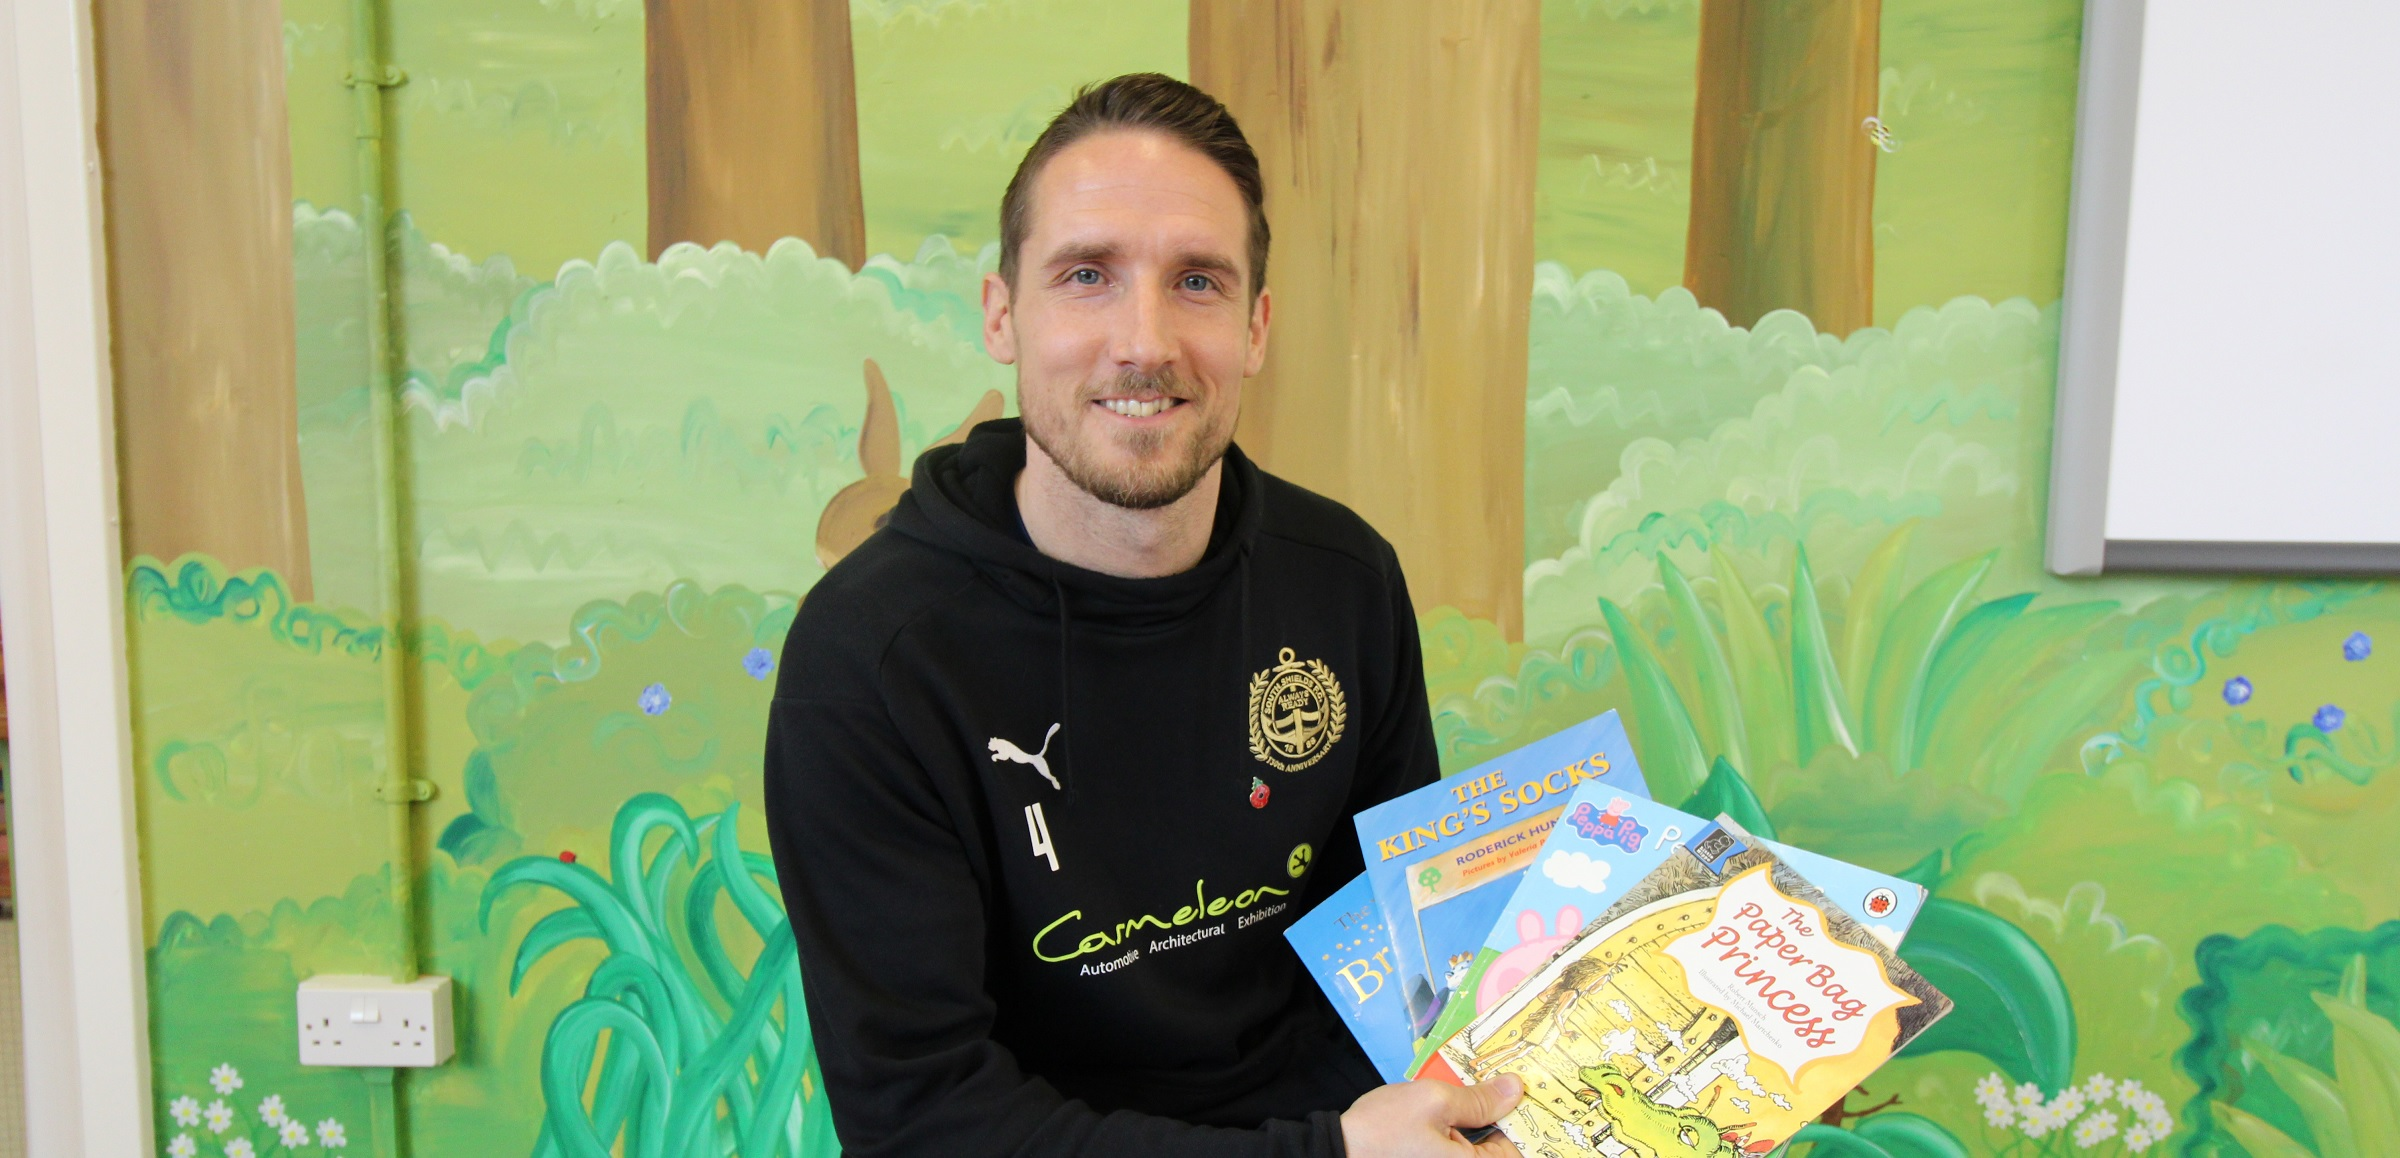 Jon Shaw goes back to school on World Book Day